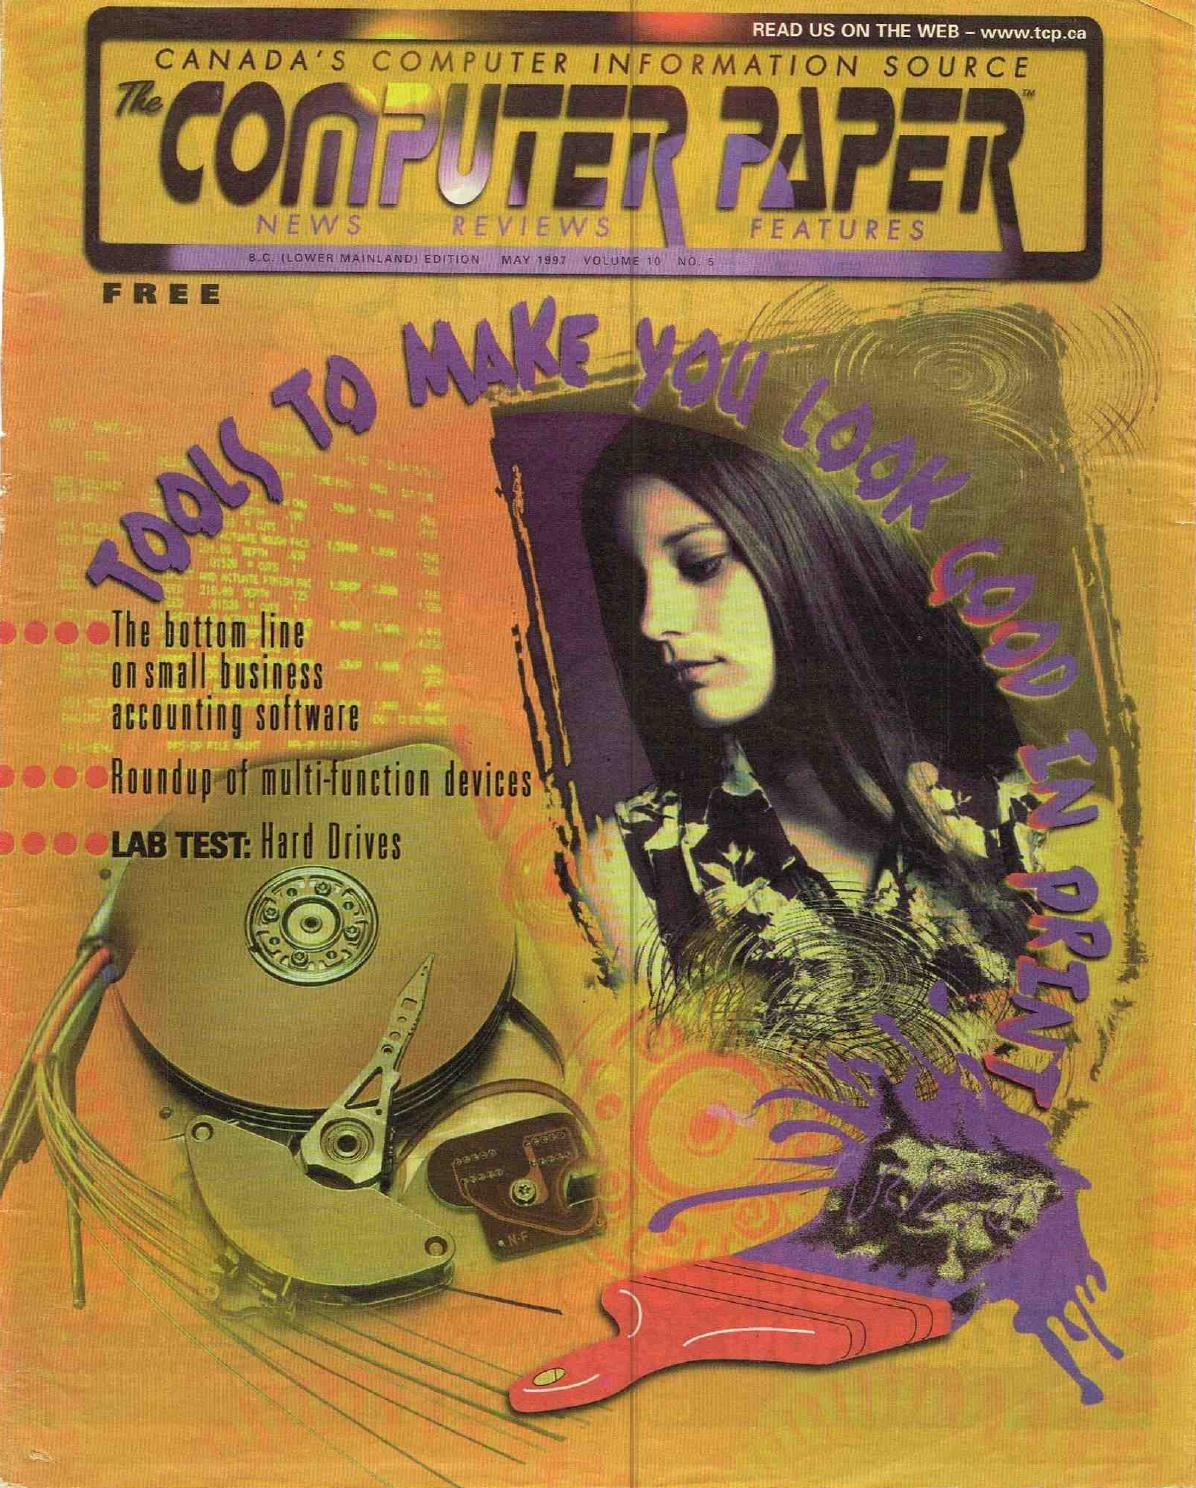 1997 05 The Computer Paper - BC Edition by The Computer Paper - issuu